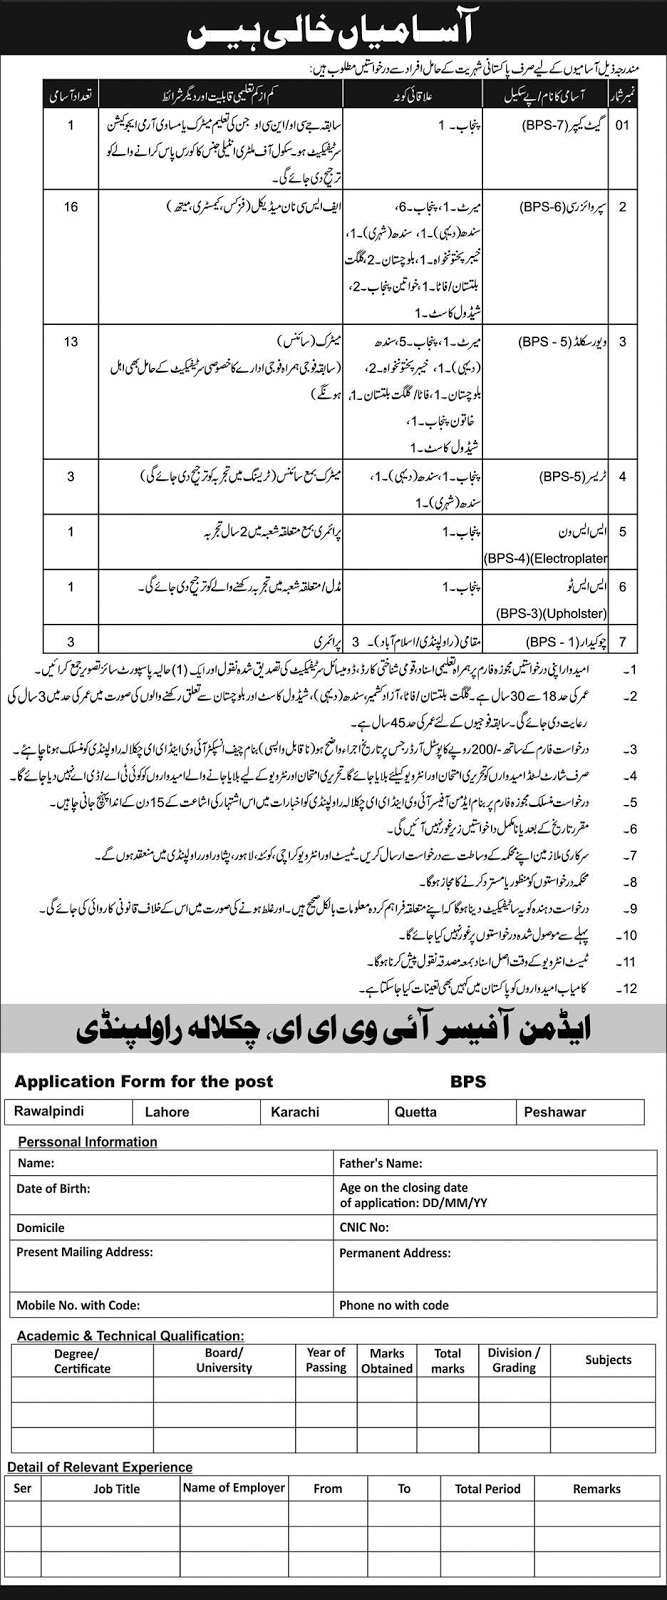 Latest Vacancies Announced in Public Sector Organization Rawalpindi 23 September 2018 - Naya Pak Jobs